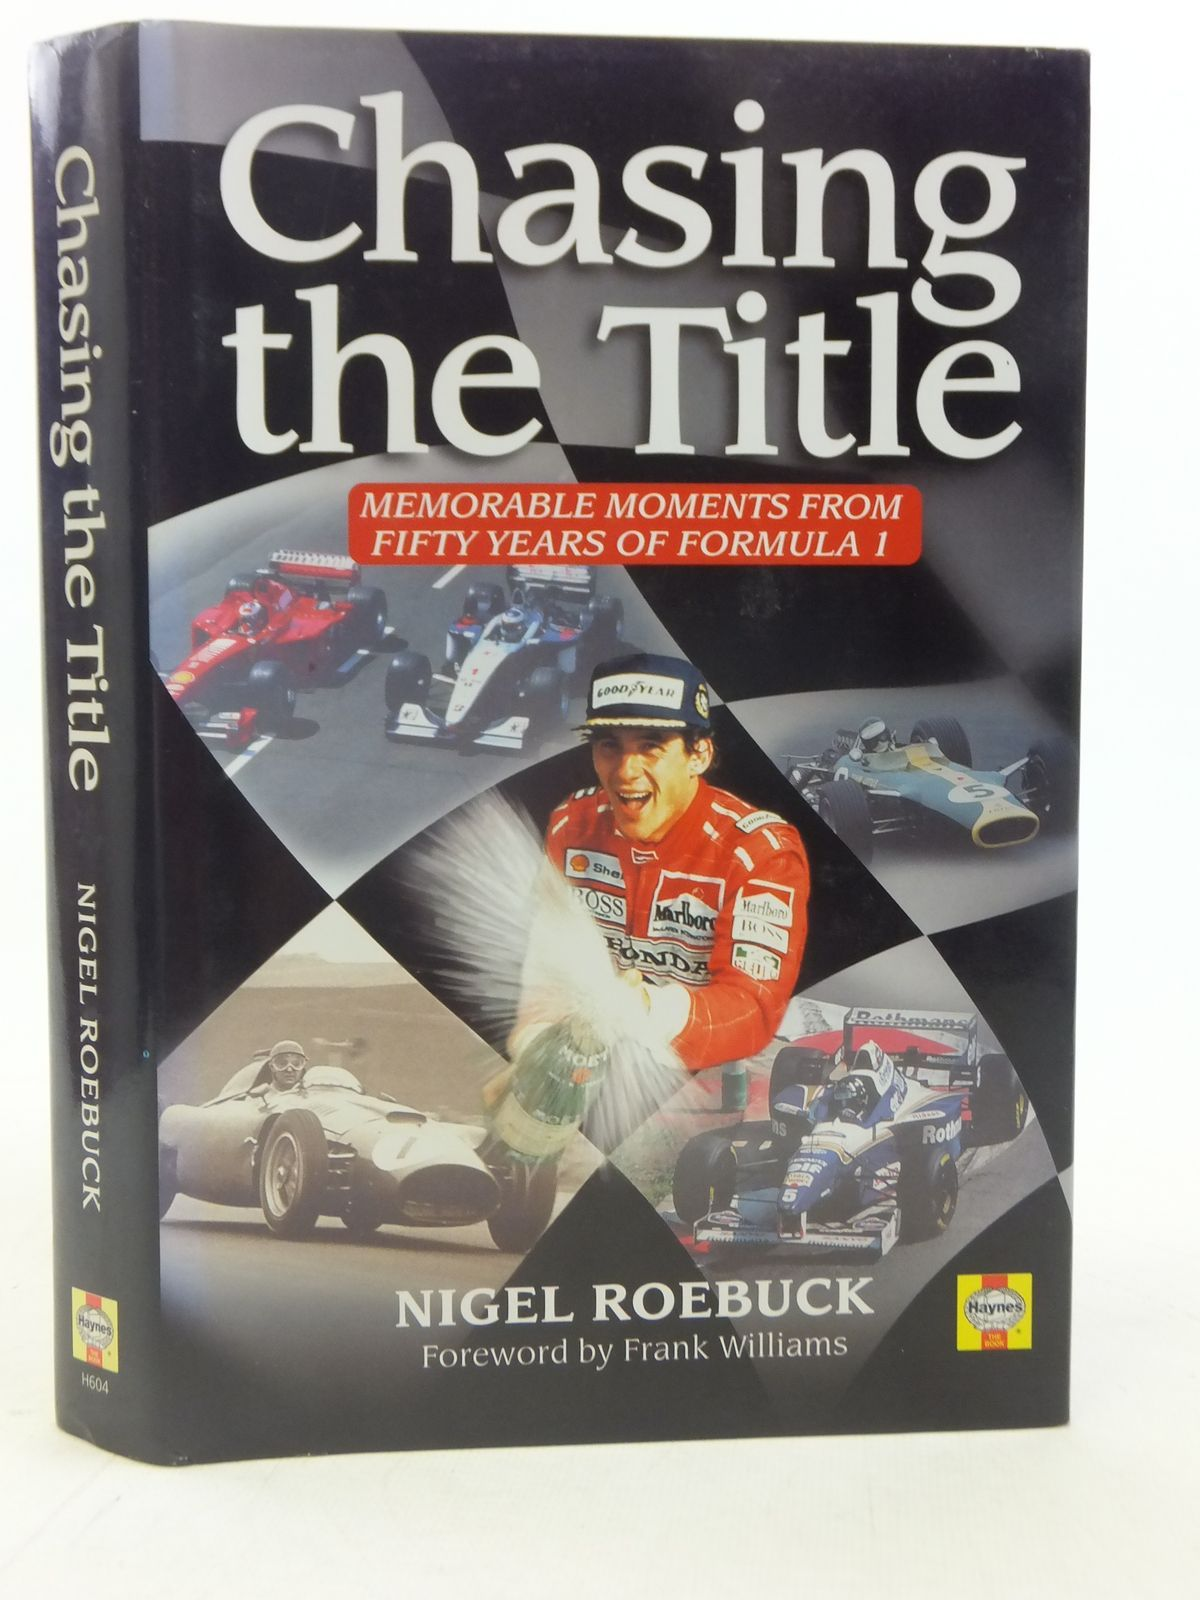 Photo of CHASING THE TITLE MEMORABLE MOMENTS FROM FIFTY YEARS OF FORMULA 1 written by Roebuck, Nigel published by Haynes Publishing Group (STOCK CODE: 1606120)  for sale by Stella & Rose's Books